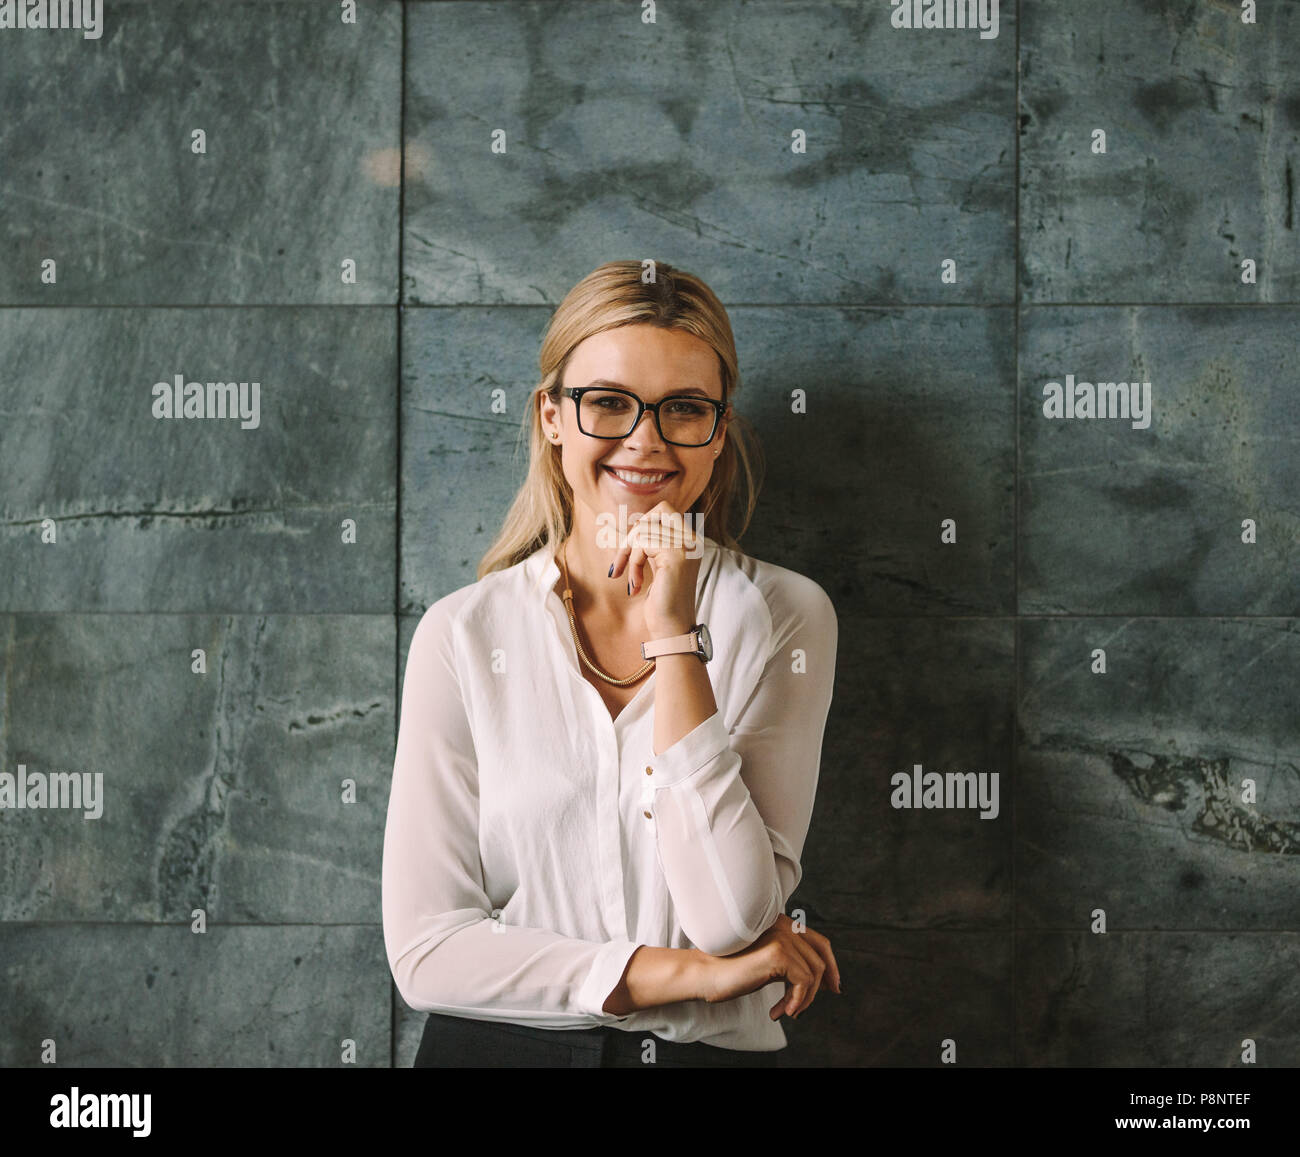 Portrait of beautiful young woman in formal wear standing against grey wall and smiling. Businesswoman with glasses looking at camera with hand on chi - Stock Image